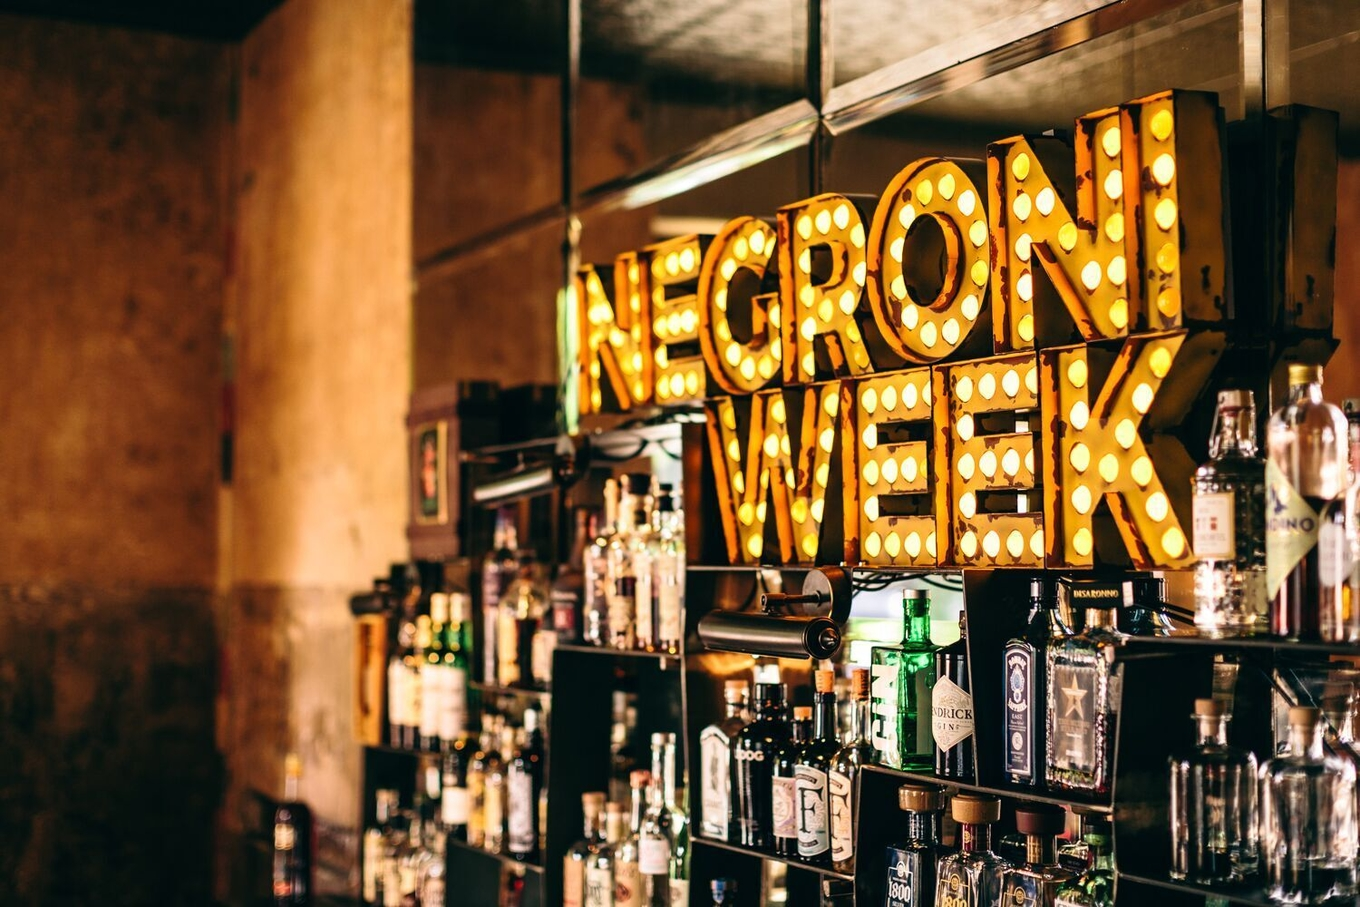 Jeffrey Morgenthaler's Negroni Week Guest Shift Tour image 1